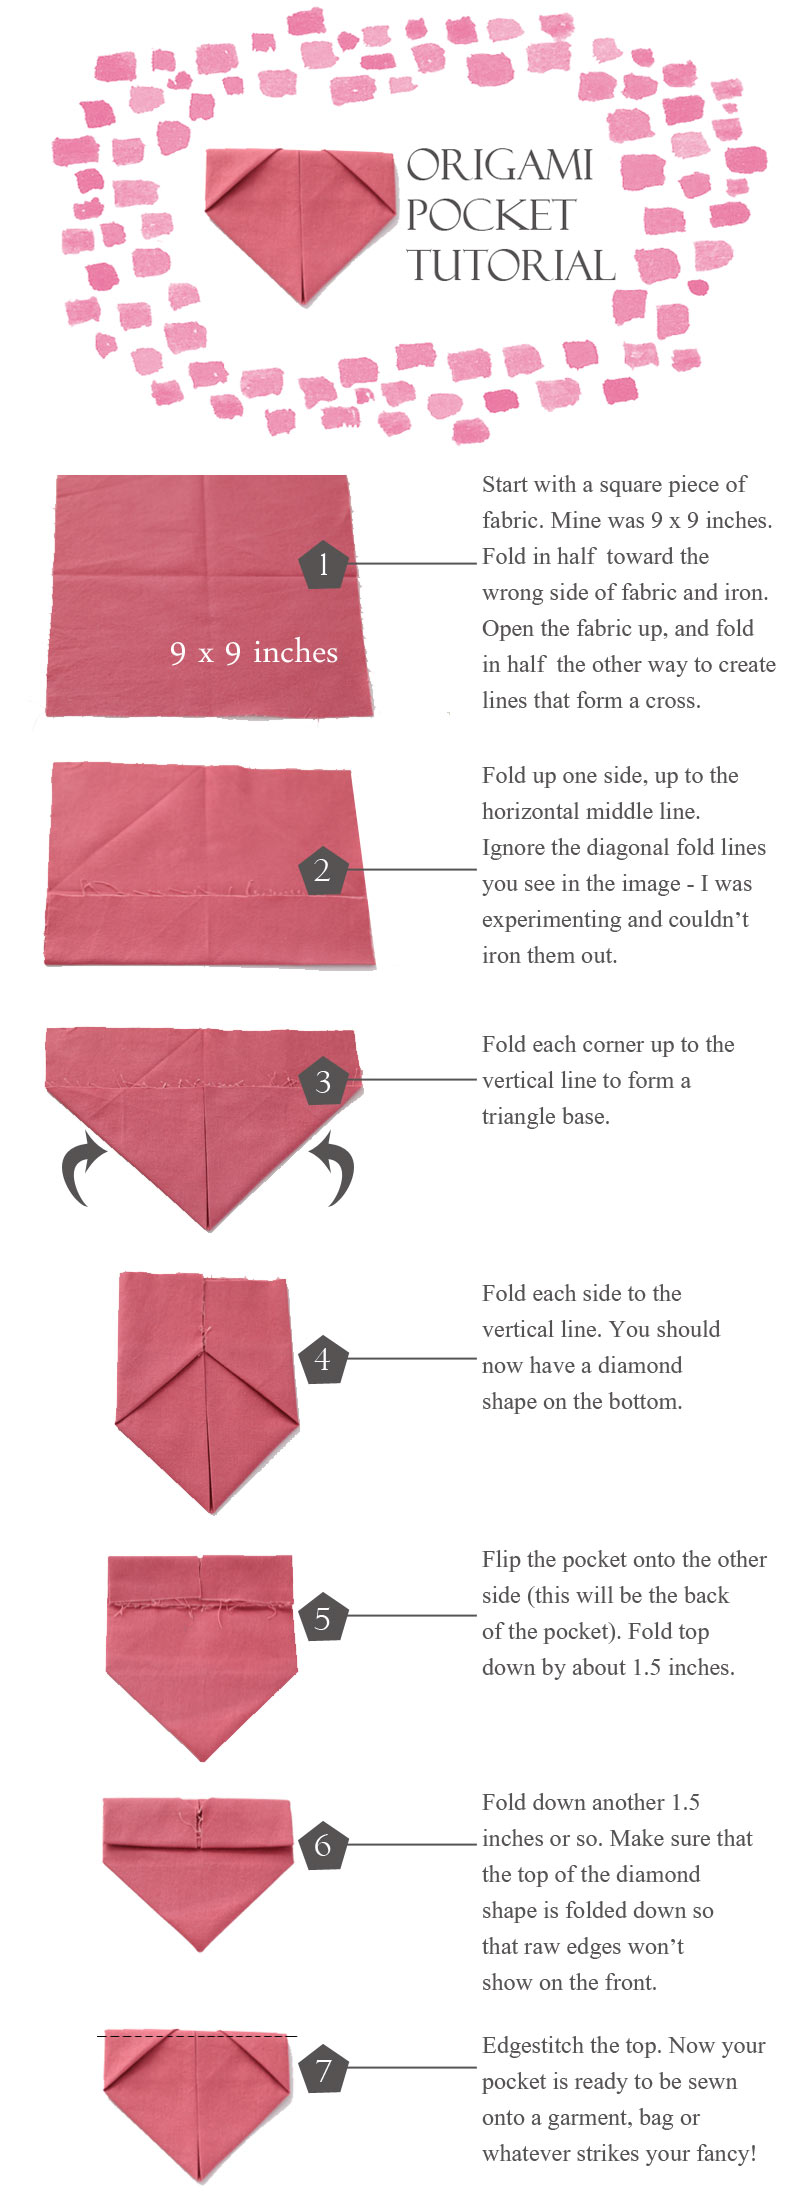 origami-pocket-tutorial2